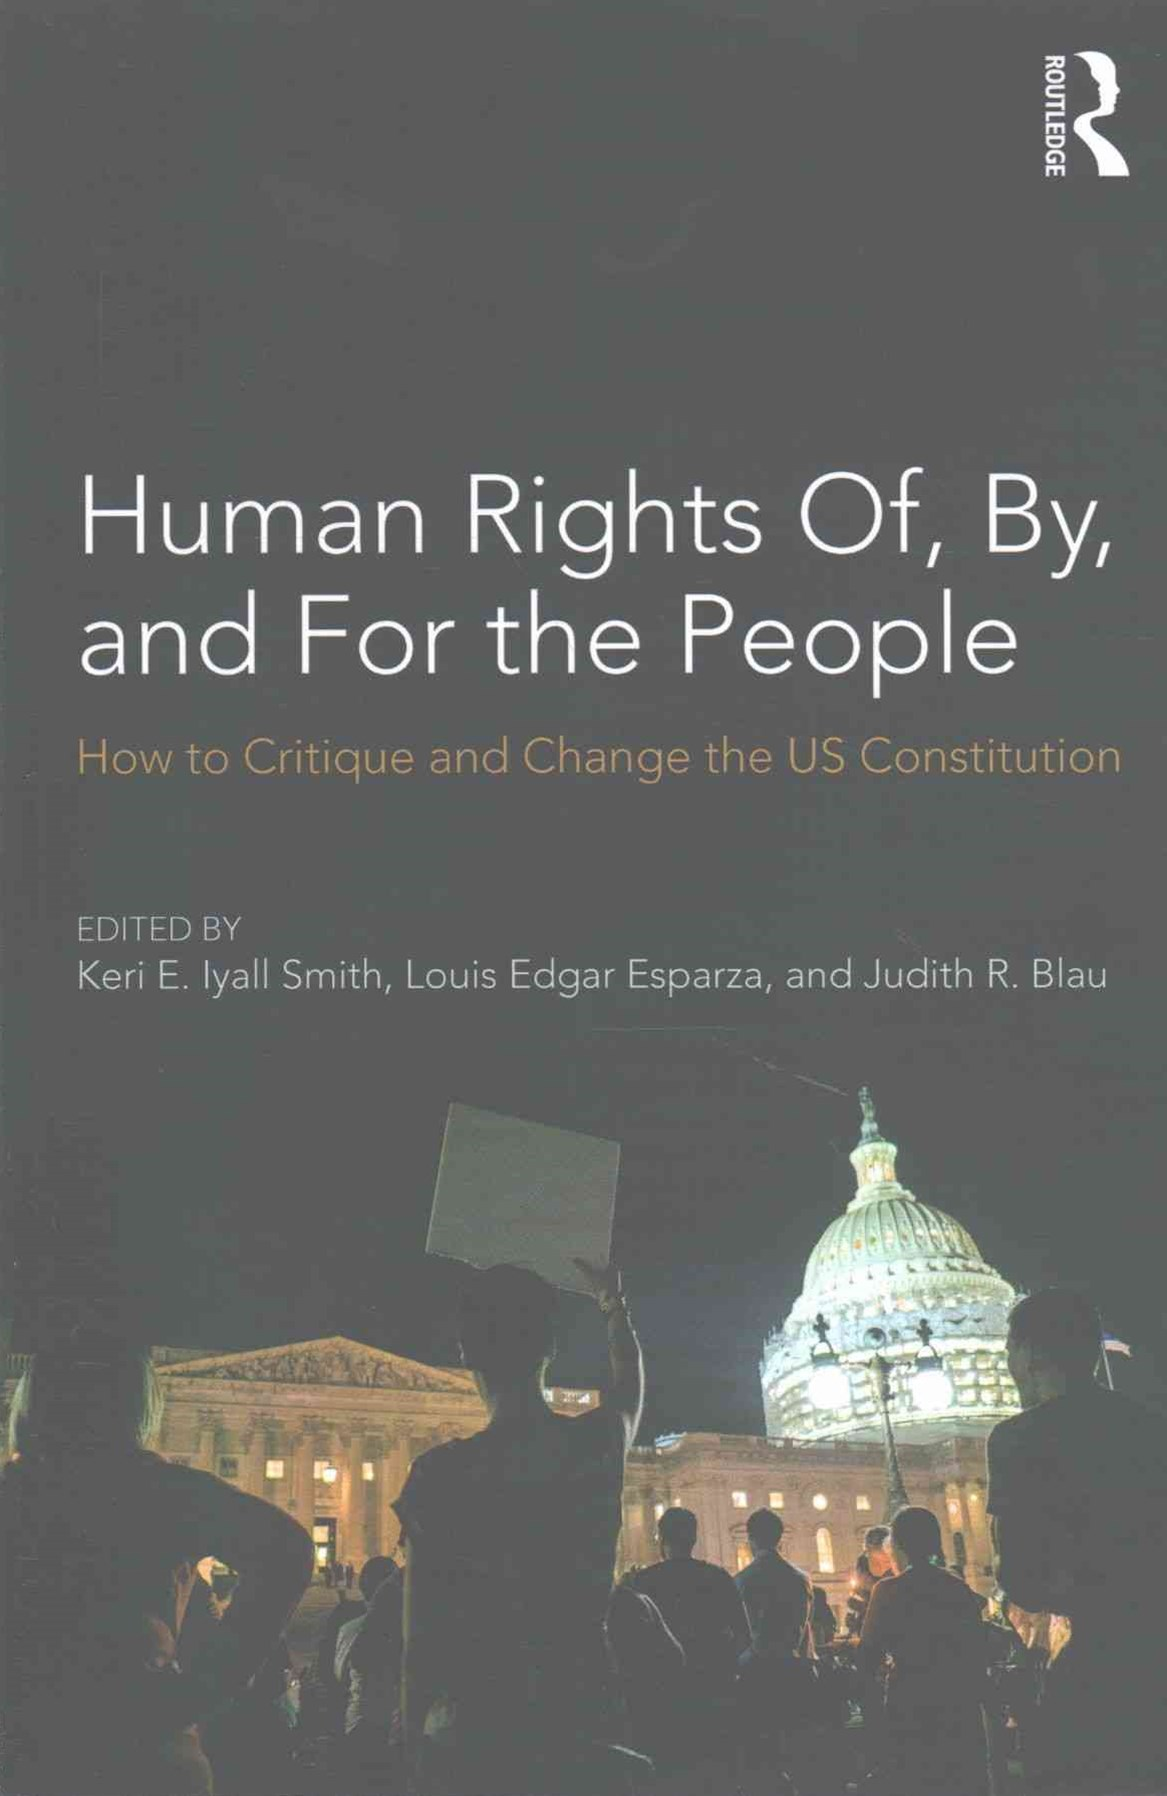 Human Rights of, by, and for the People